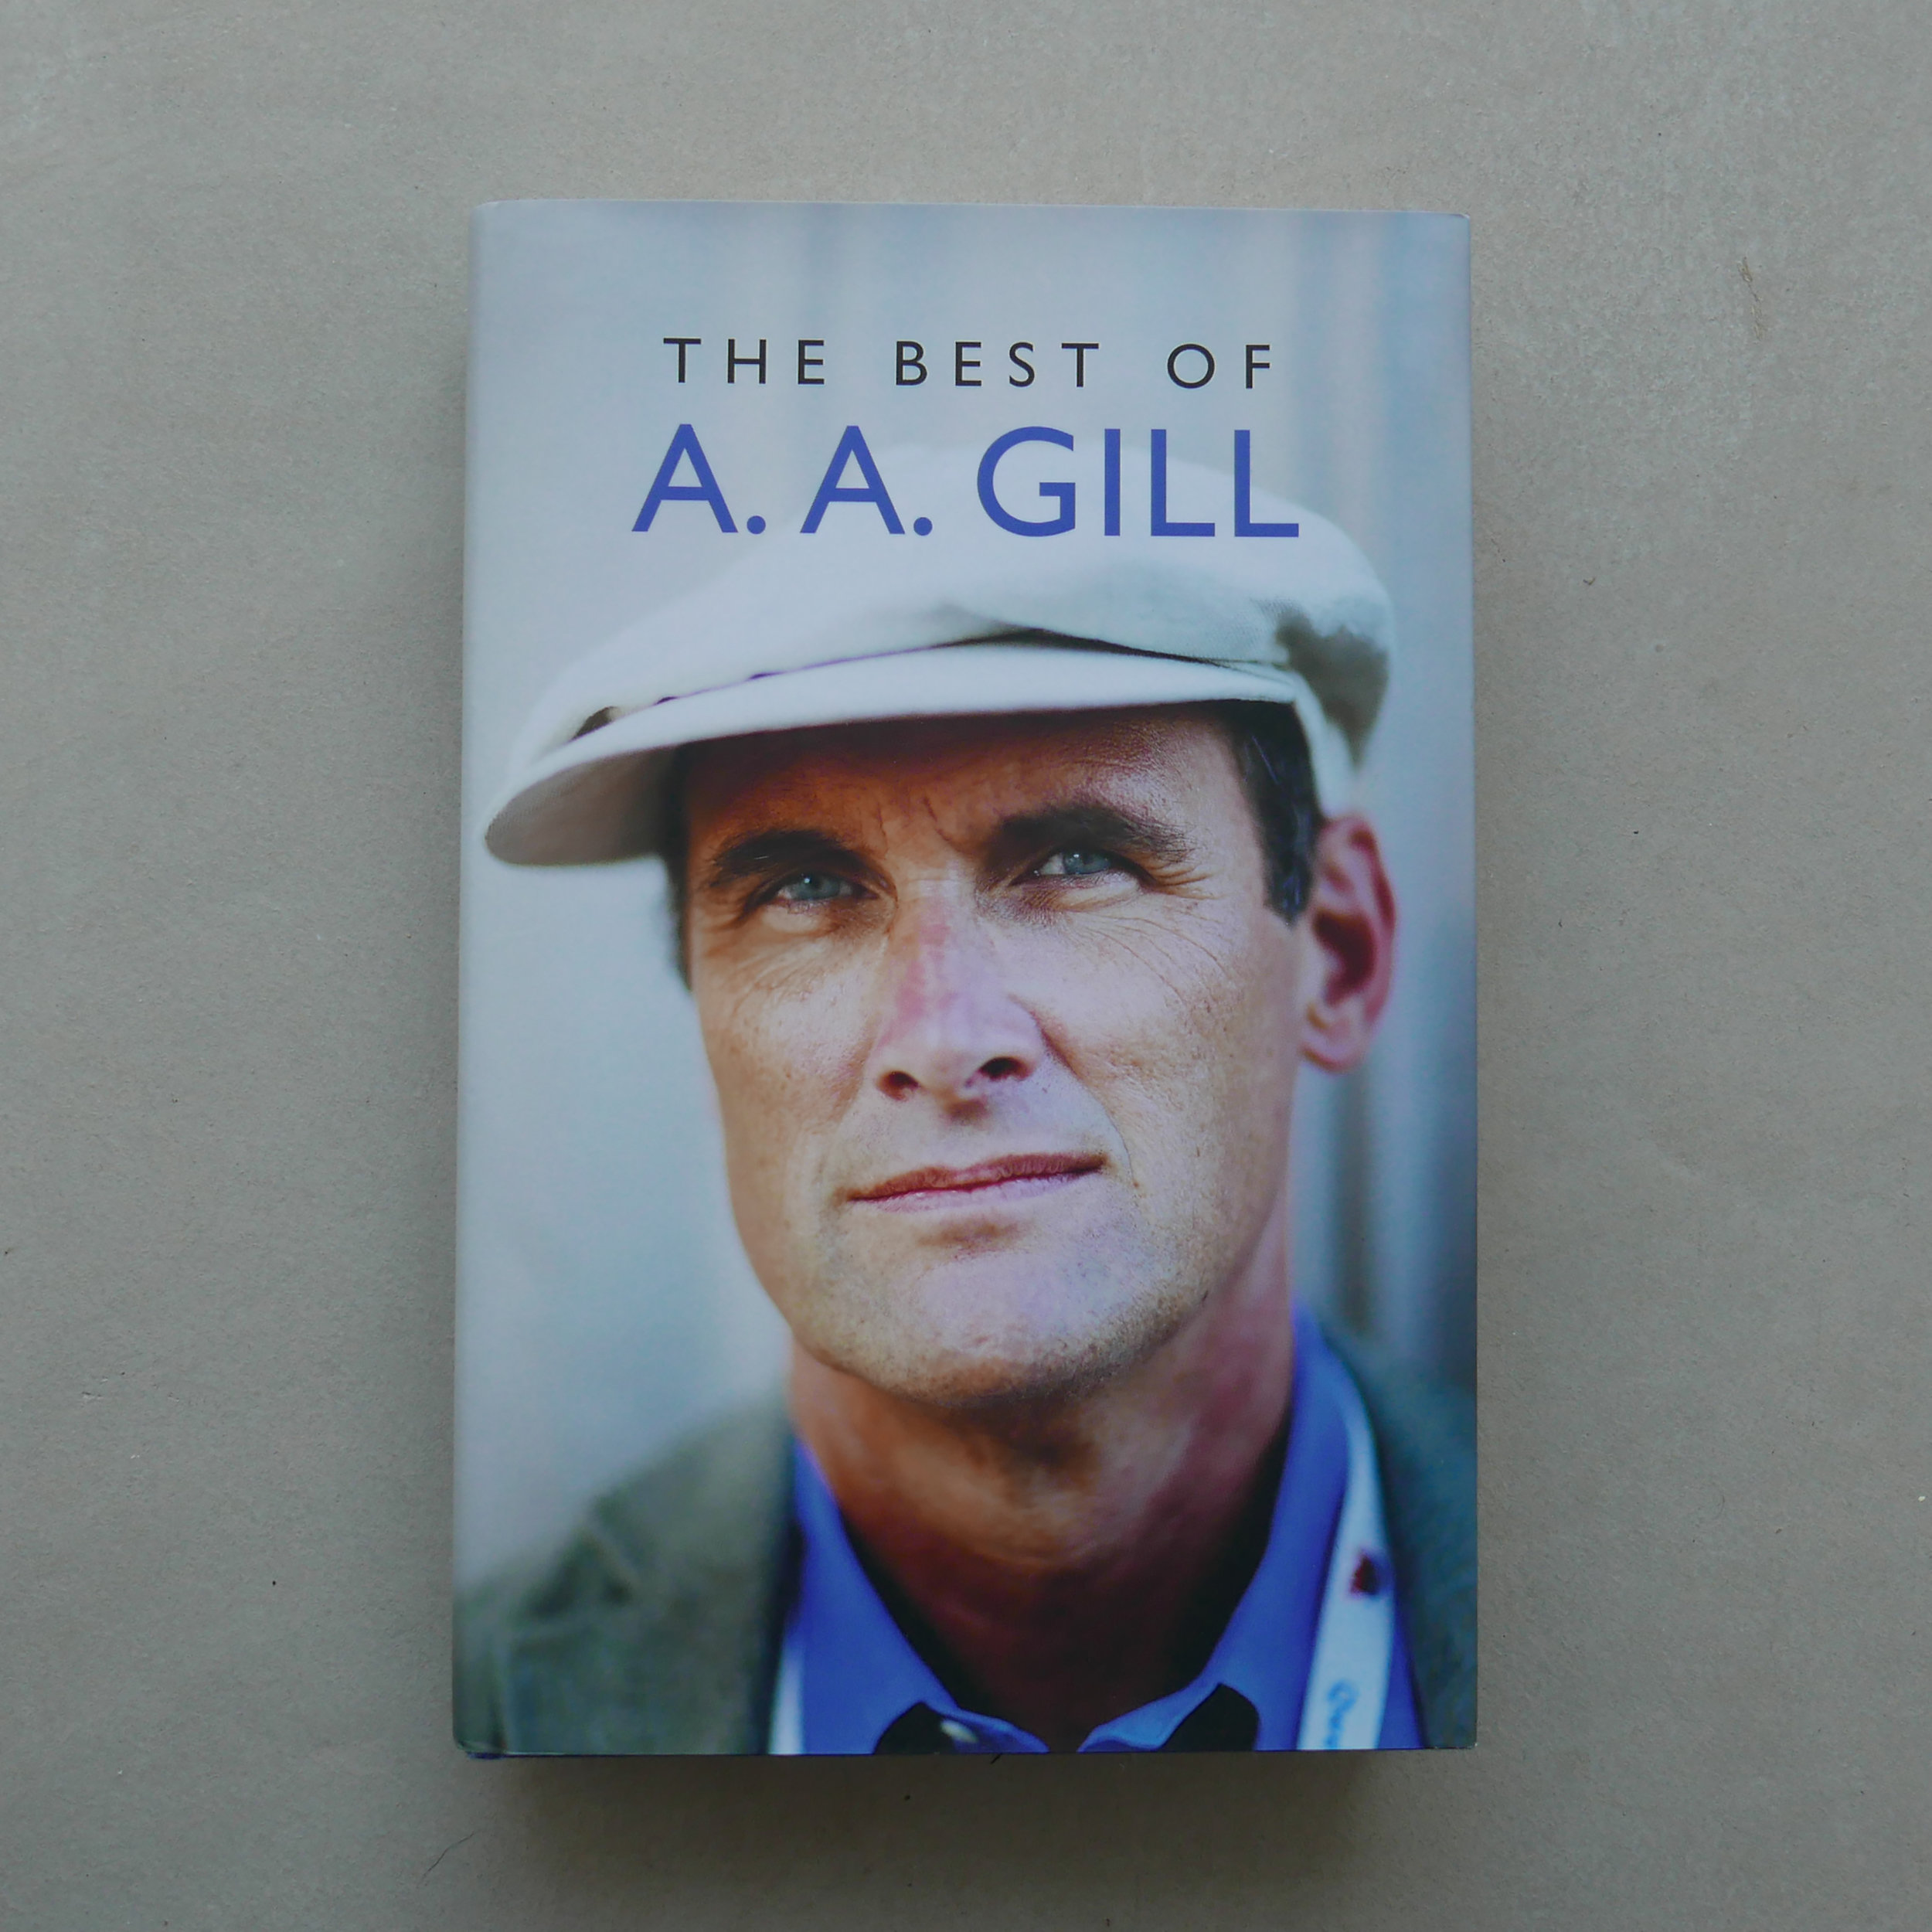 The Best Of - A. A. Gill